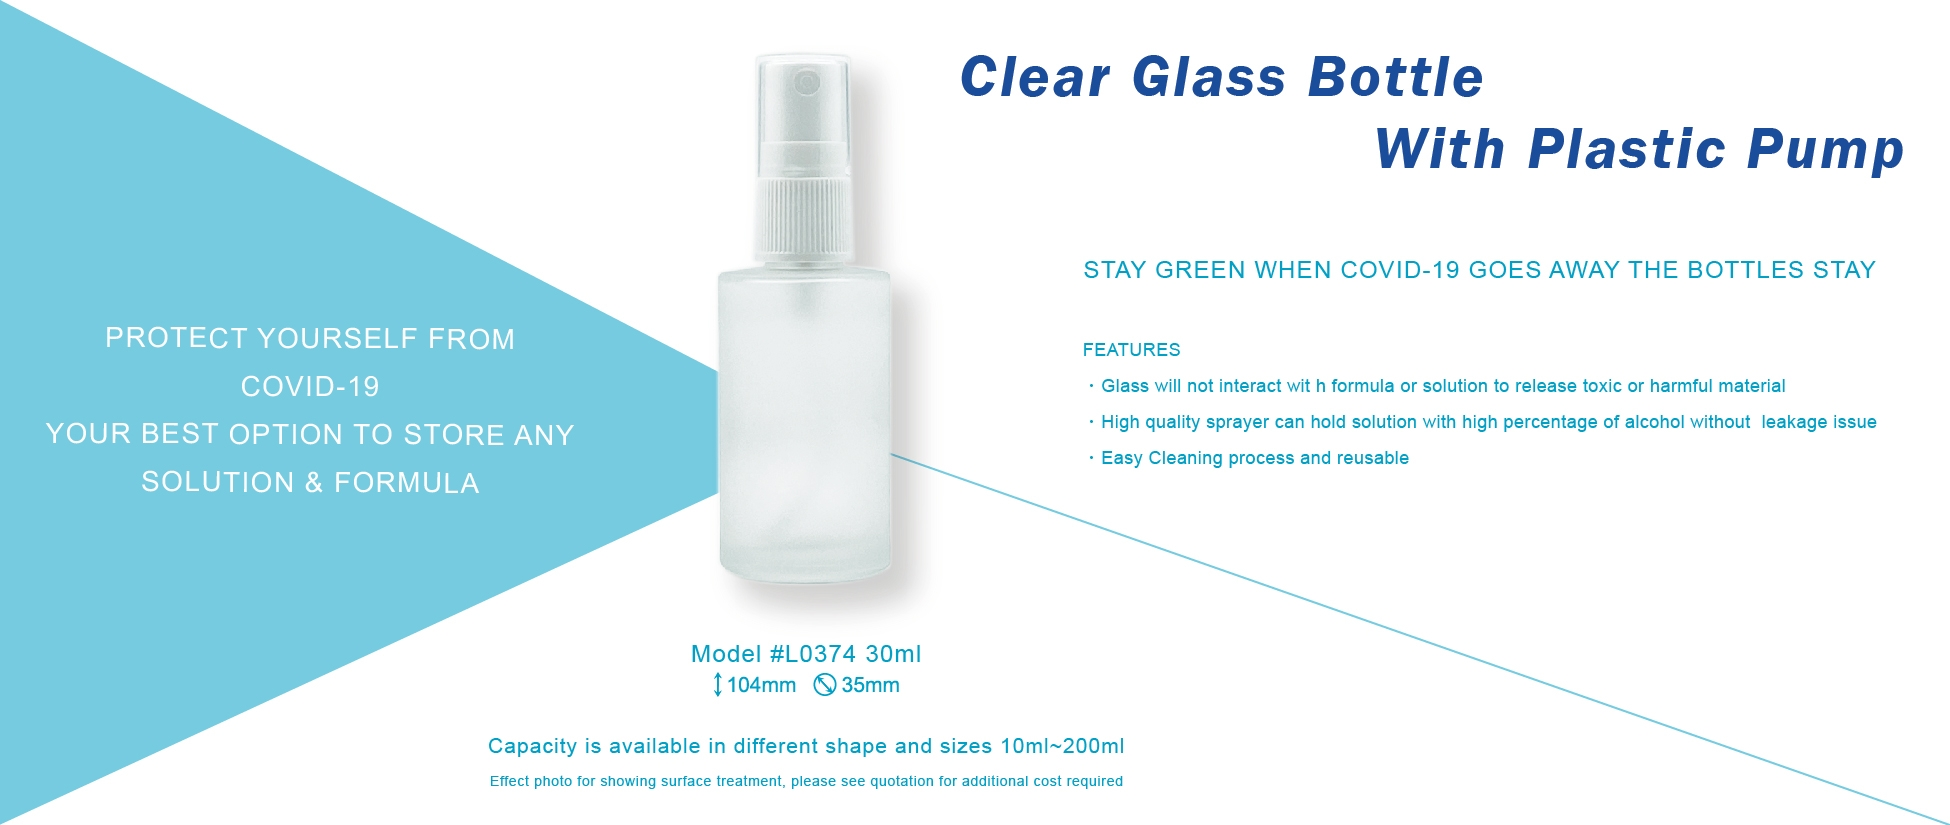 Clear Glass Bottle With Plastic Pump